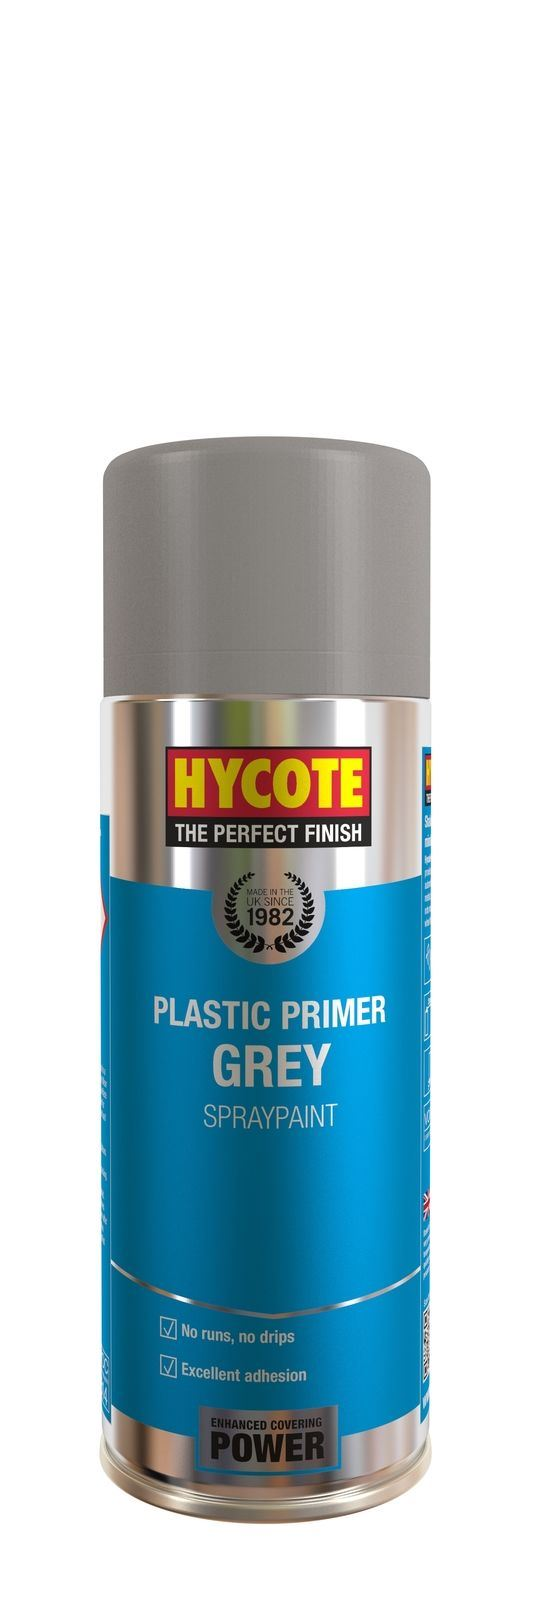 Hycote Grey Plastic Primer - 400ml